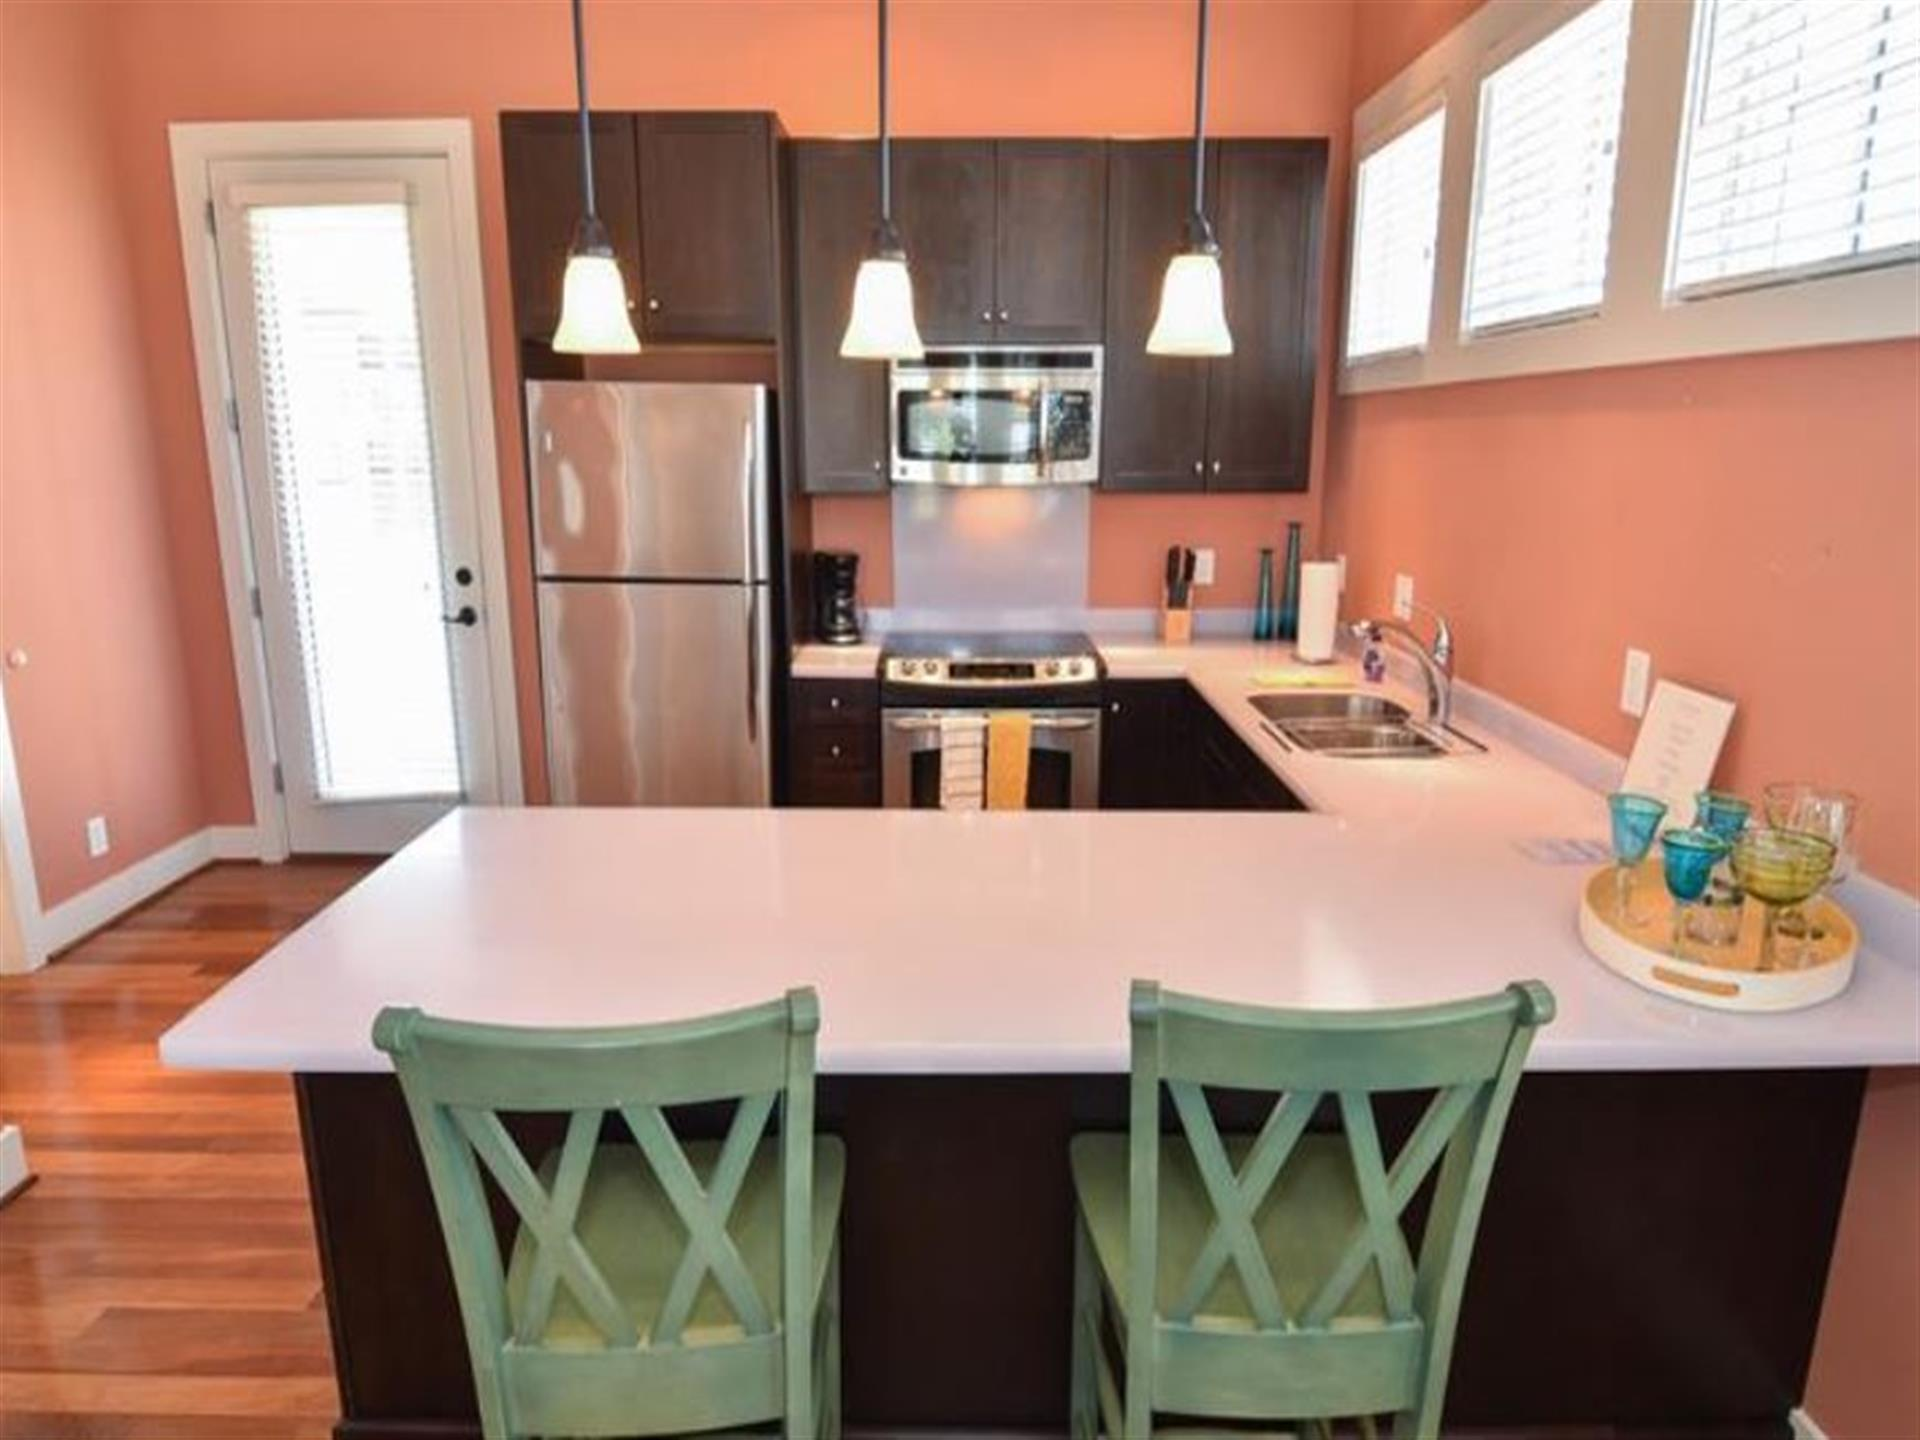 Kitchen with a breakfast counter and pink walls